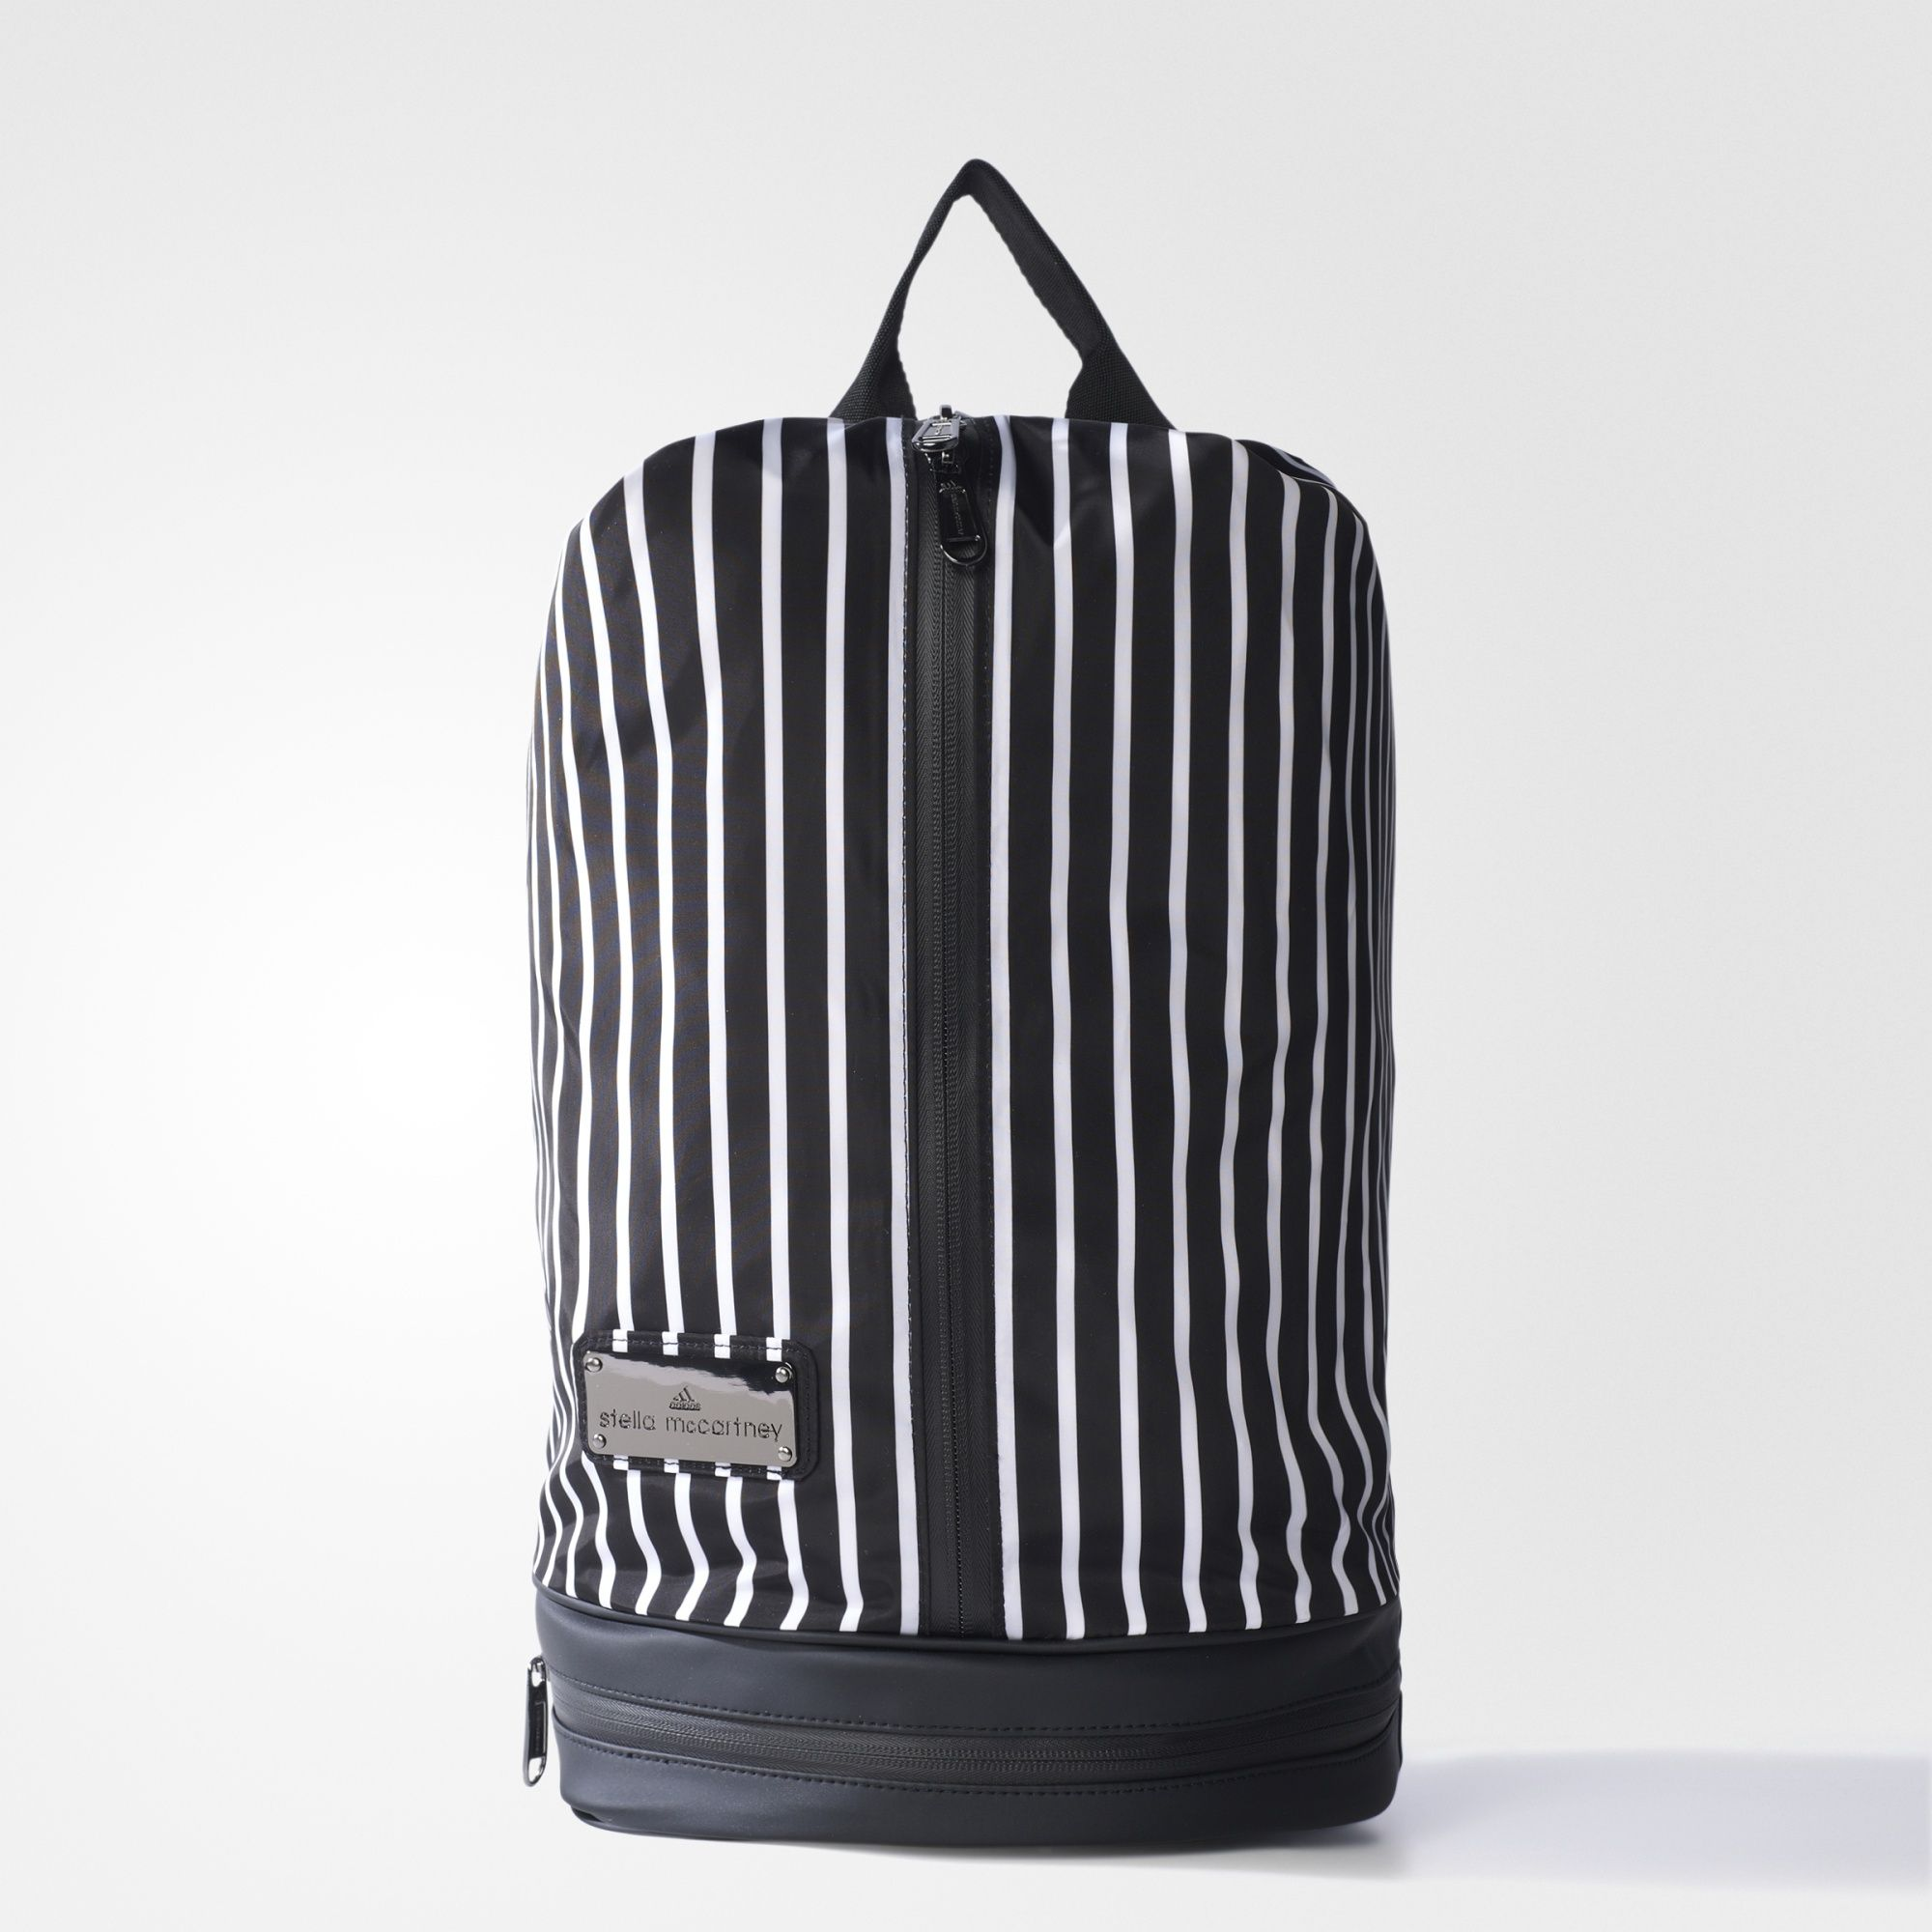 Carried as a gym bag or a backpack, the adidas by Stella